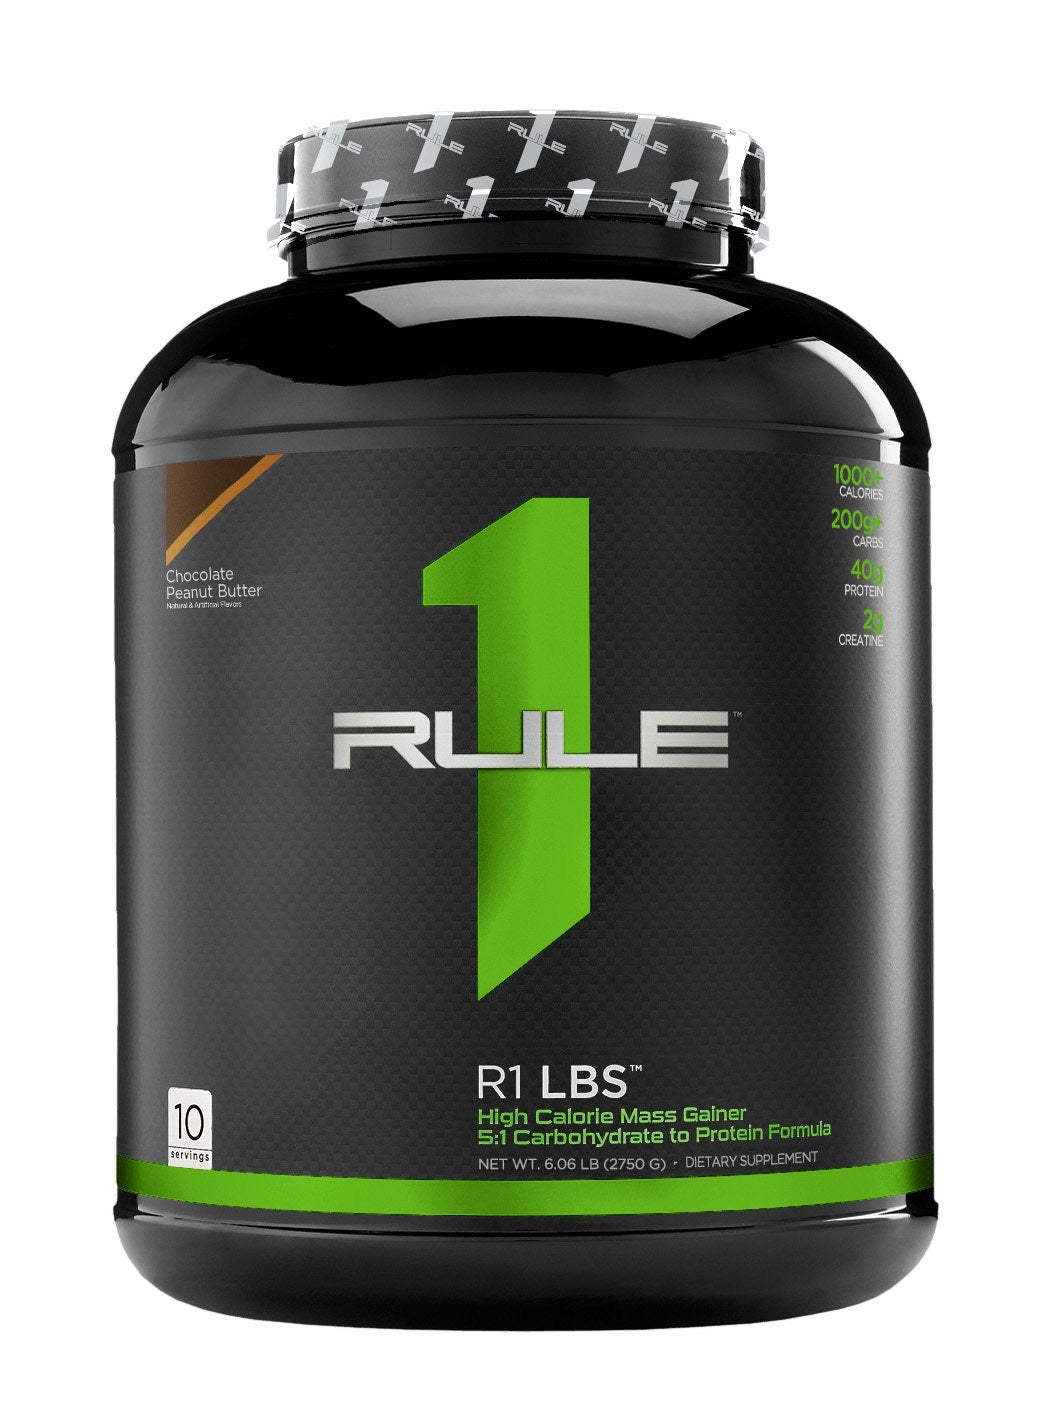 Rule 1 LBS High Calorie Mass Gainer - Prime.Nutrition1